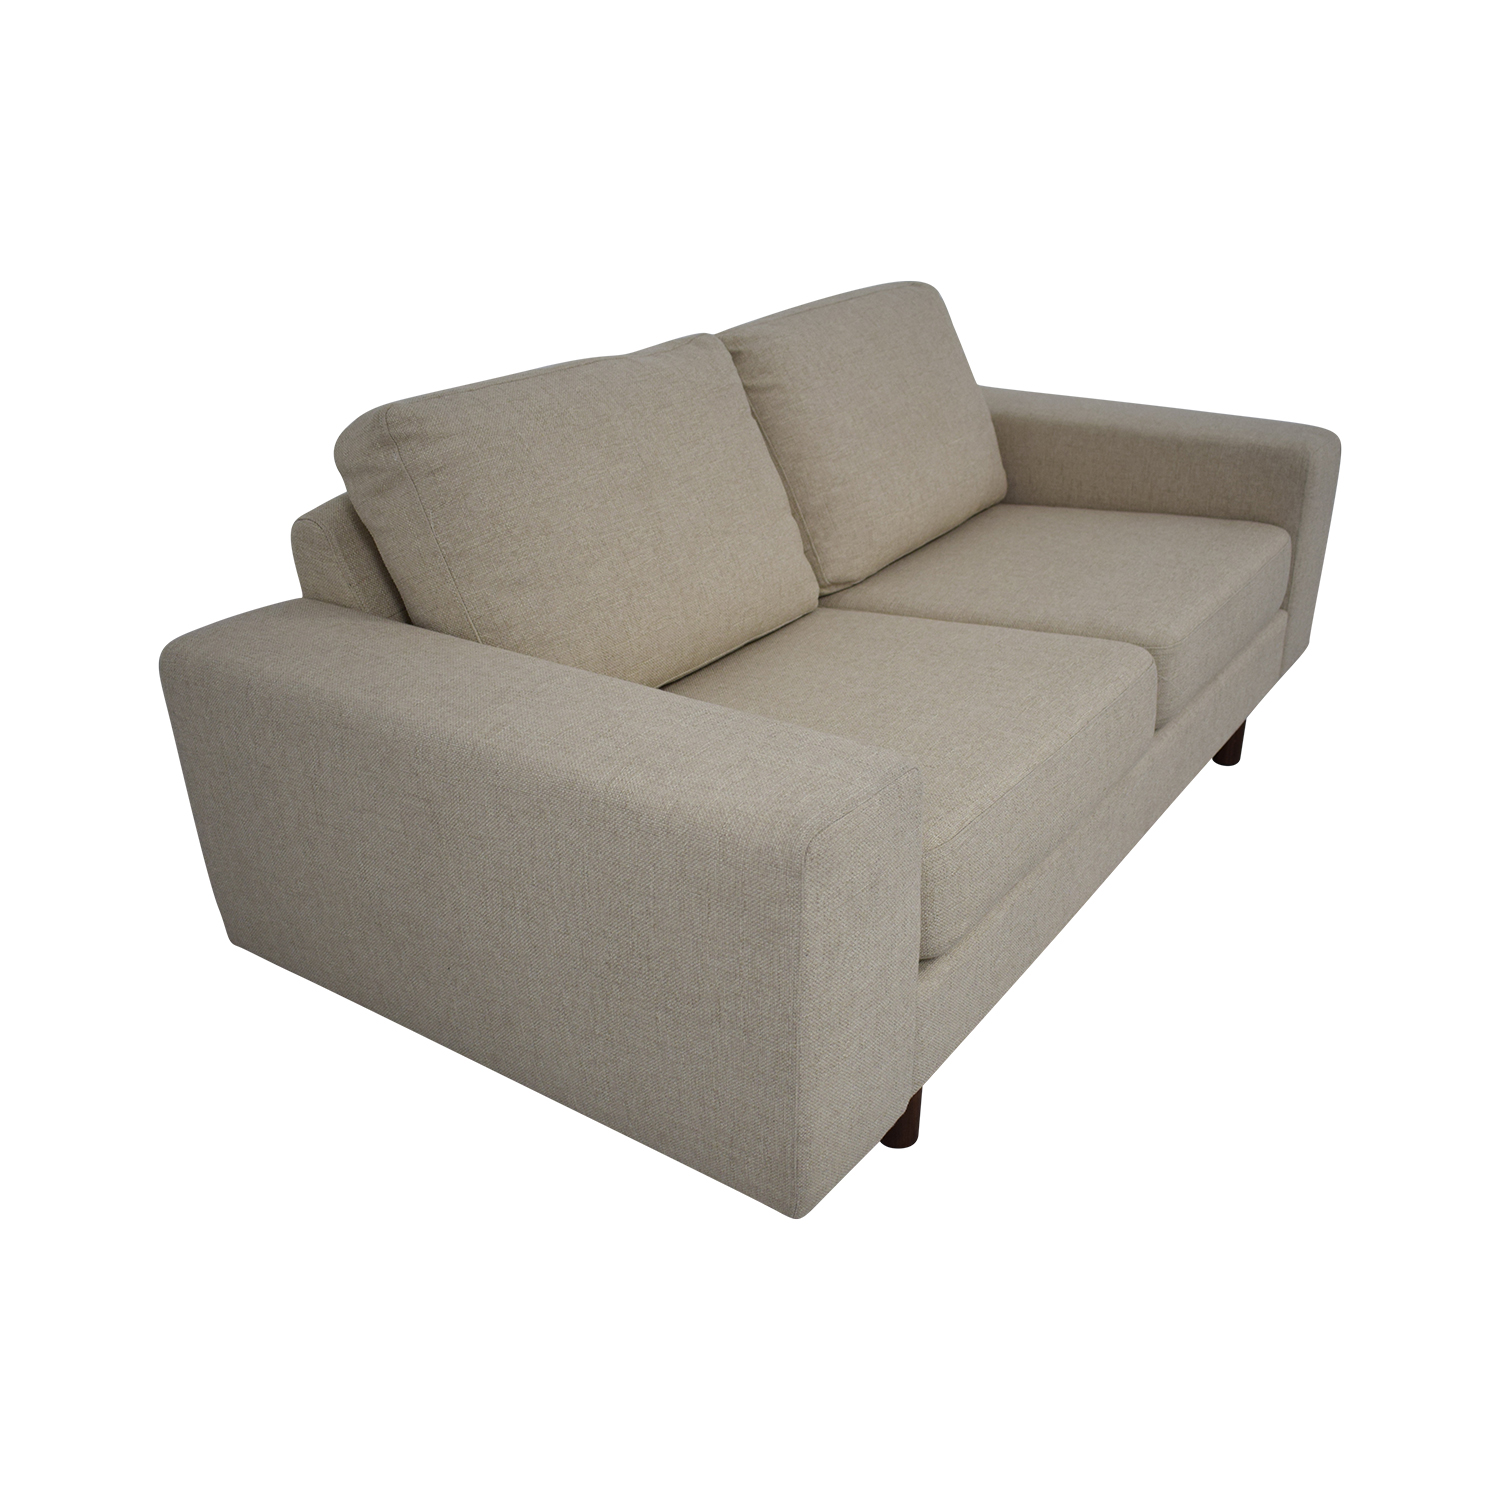 France and Son France and Son Platform Loveseat beige